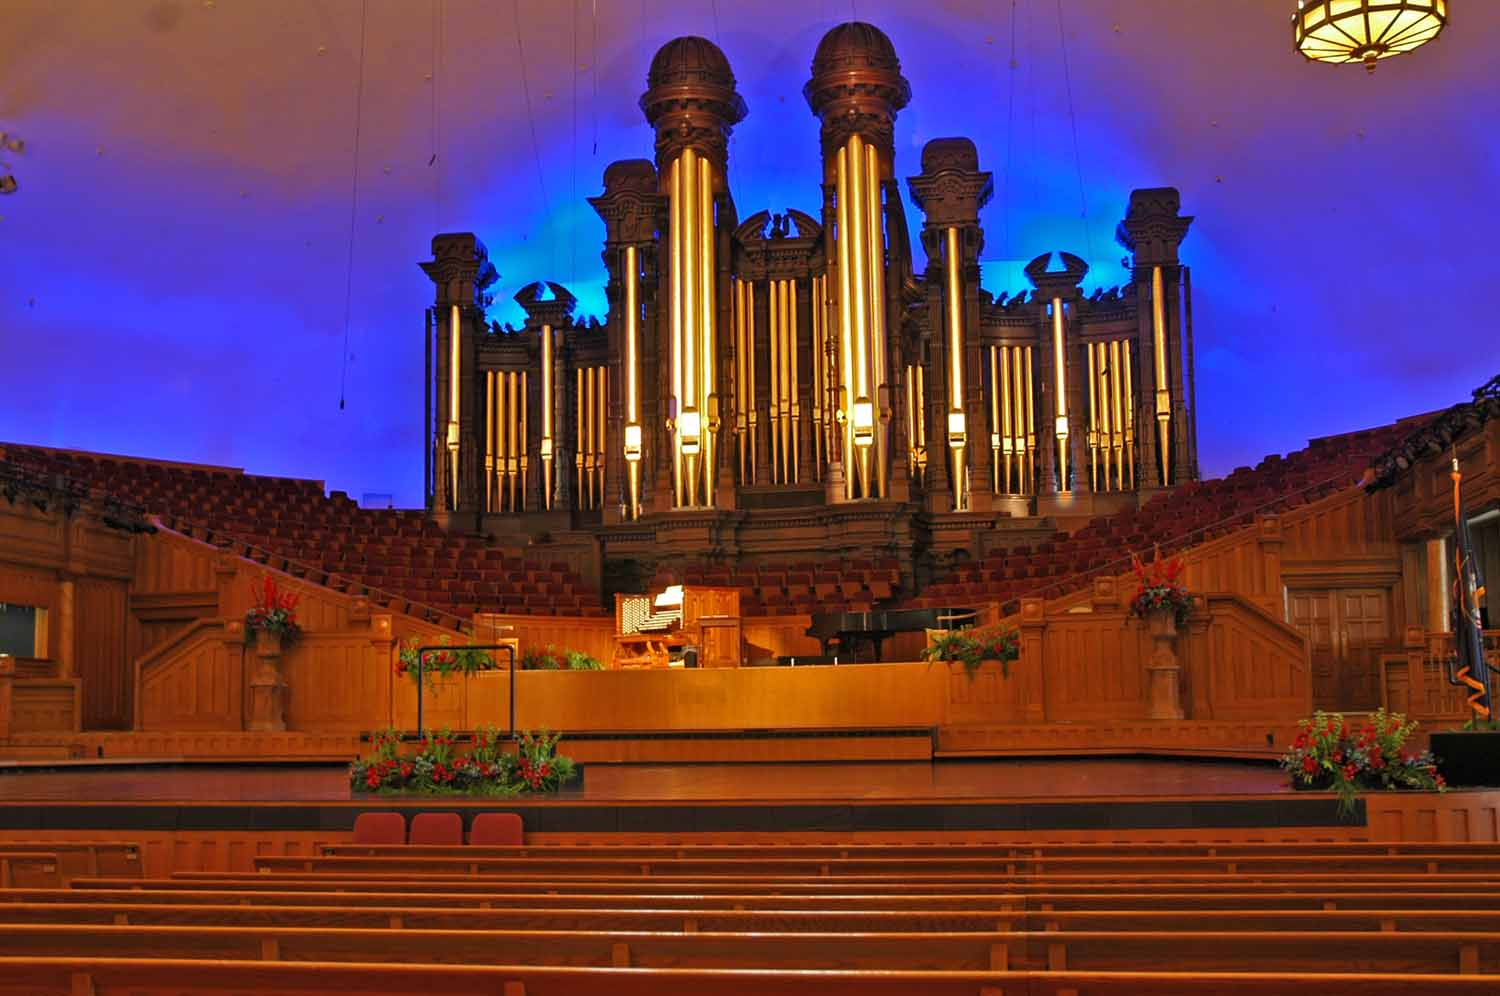 Fantastic organ...we experienced it in person